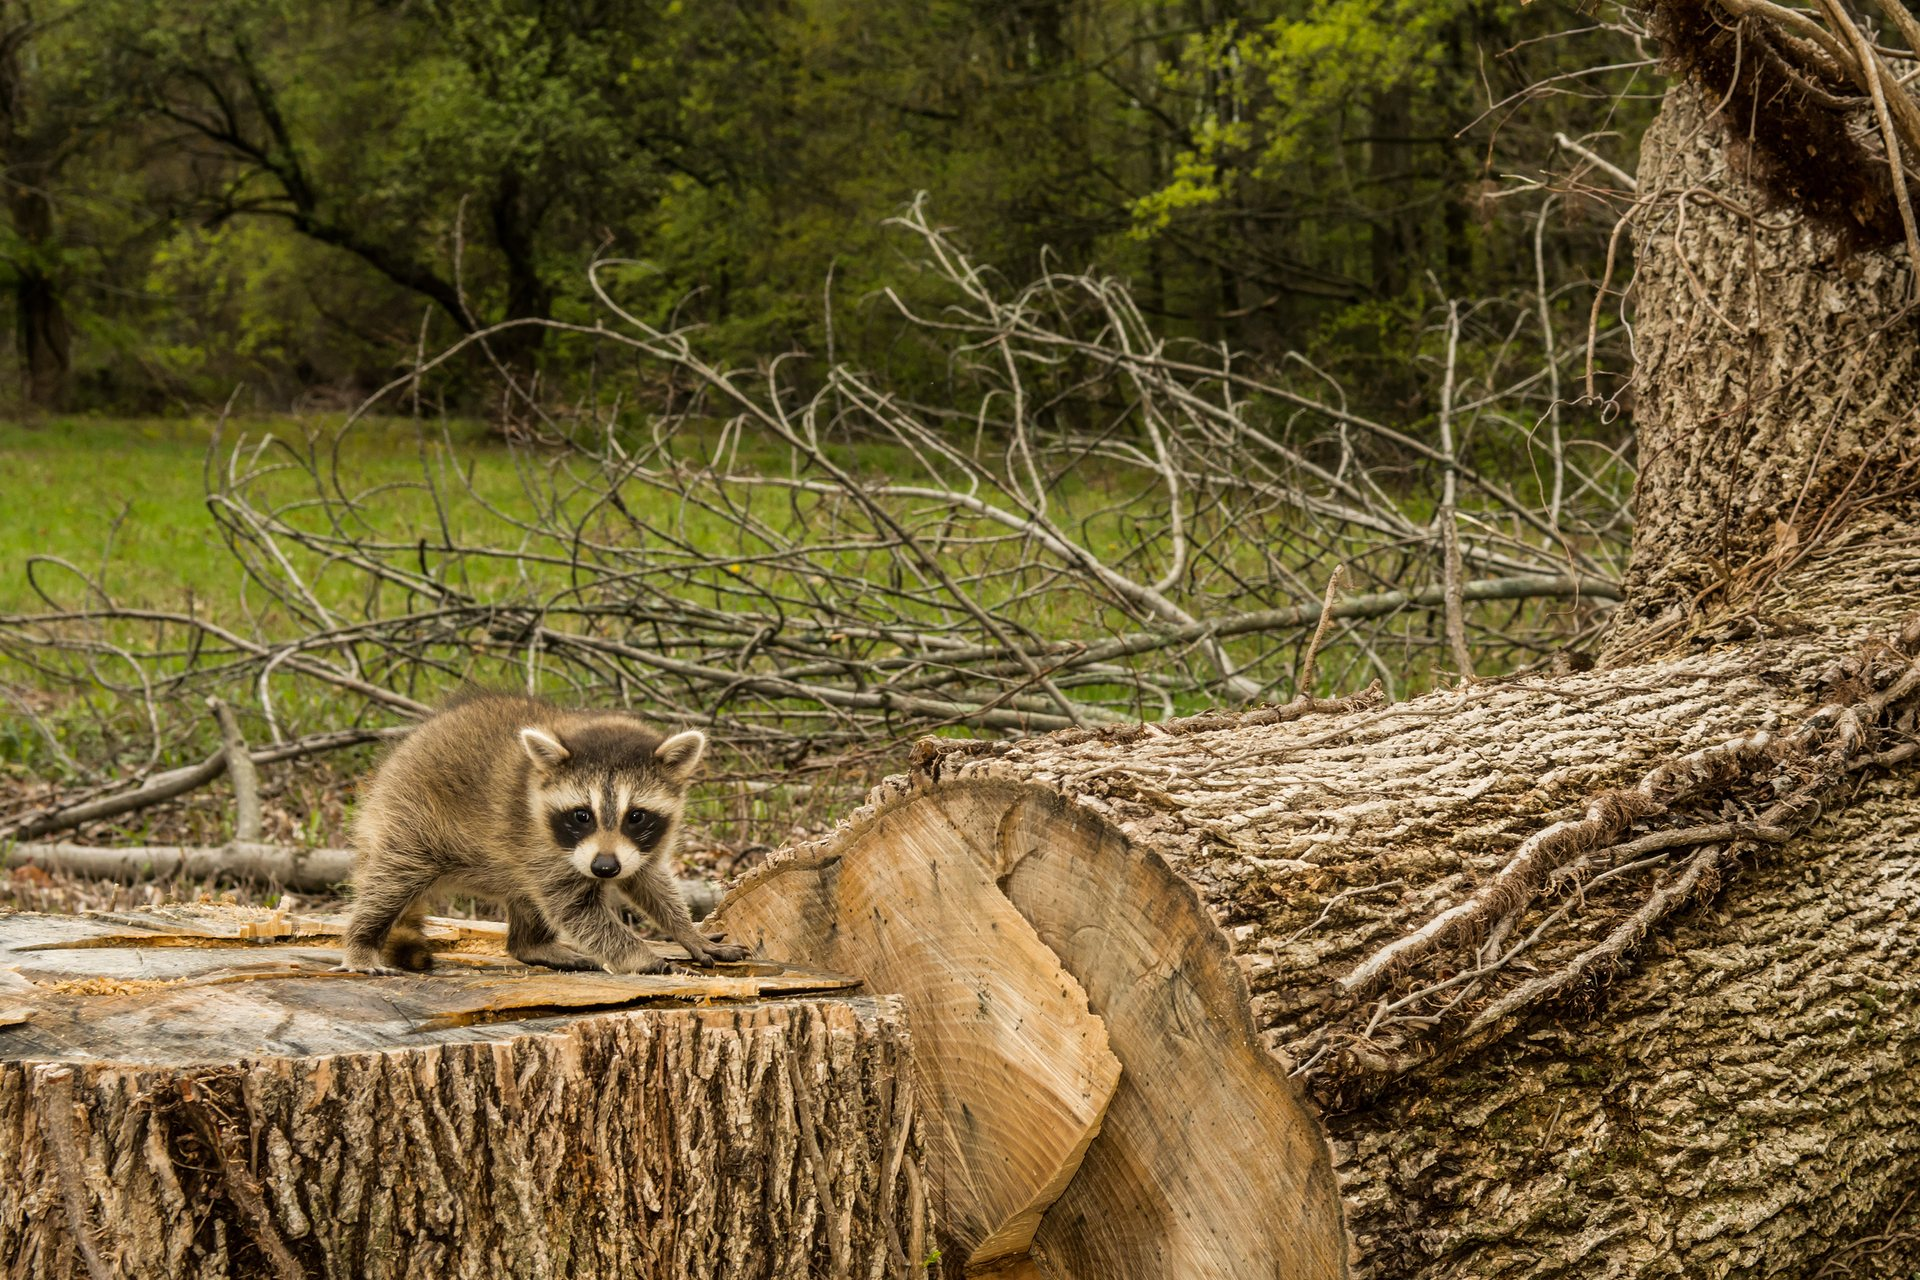 Baby Raccoon Stands on the Destruction of His Home